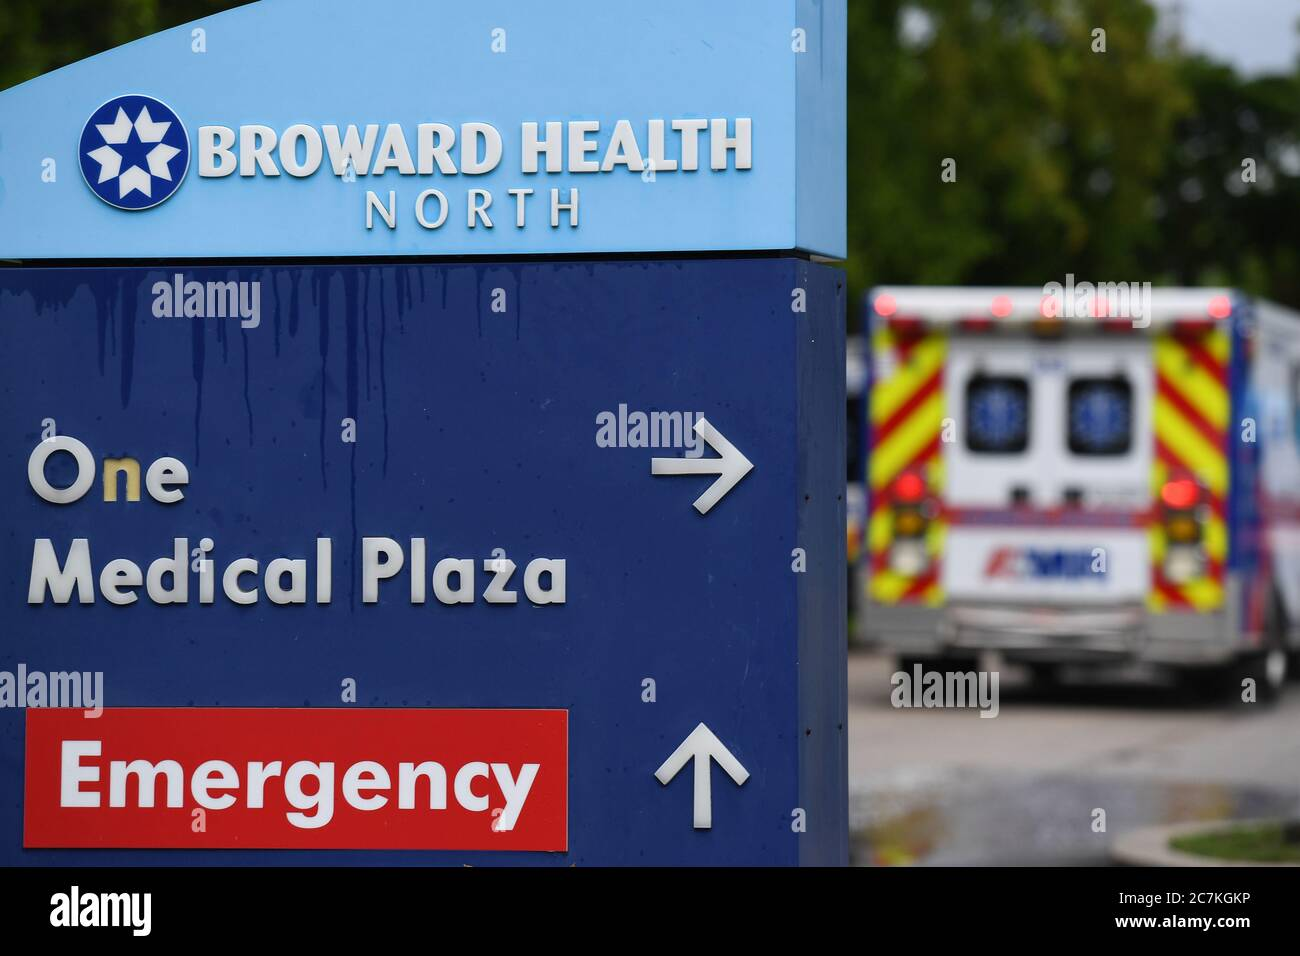 Fort Lauderdale, FL, USA. 17th July, 2020. A general view of Broward Health Hospital as Florida's Department of Health on Friday confirmed 11,000 new cases of COVID-19 in a single day on July 17, 2020 in Fort Lauderdale, Florida. Credit: Mpi04/Media Punch/Alamy Live News Stock Photo